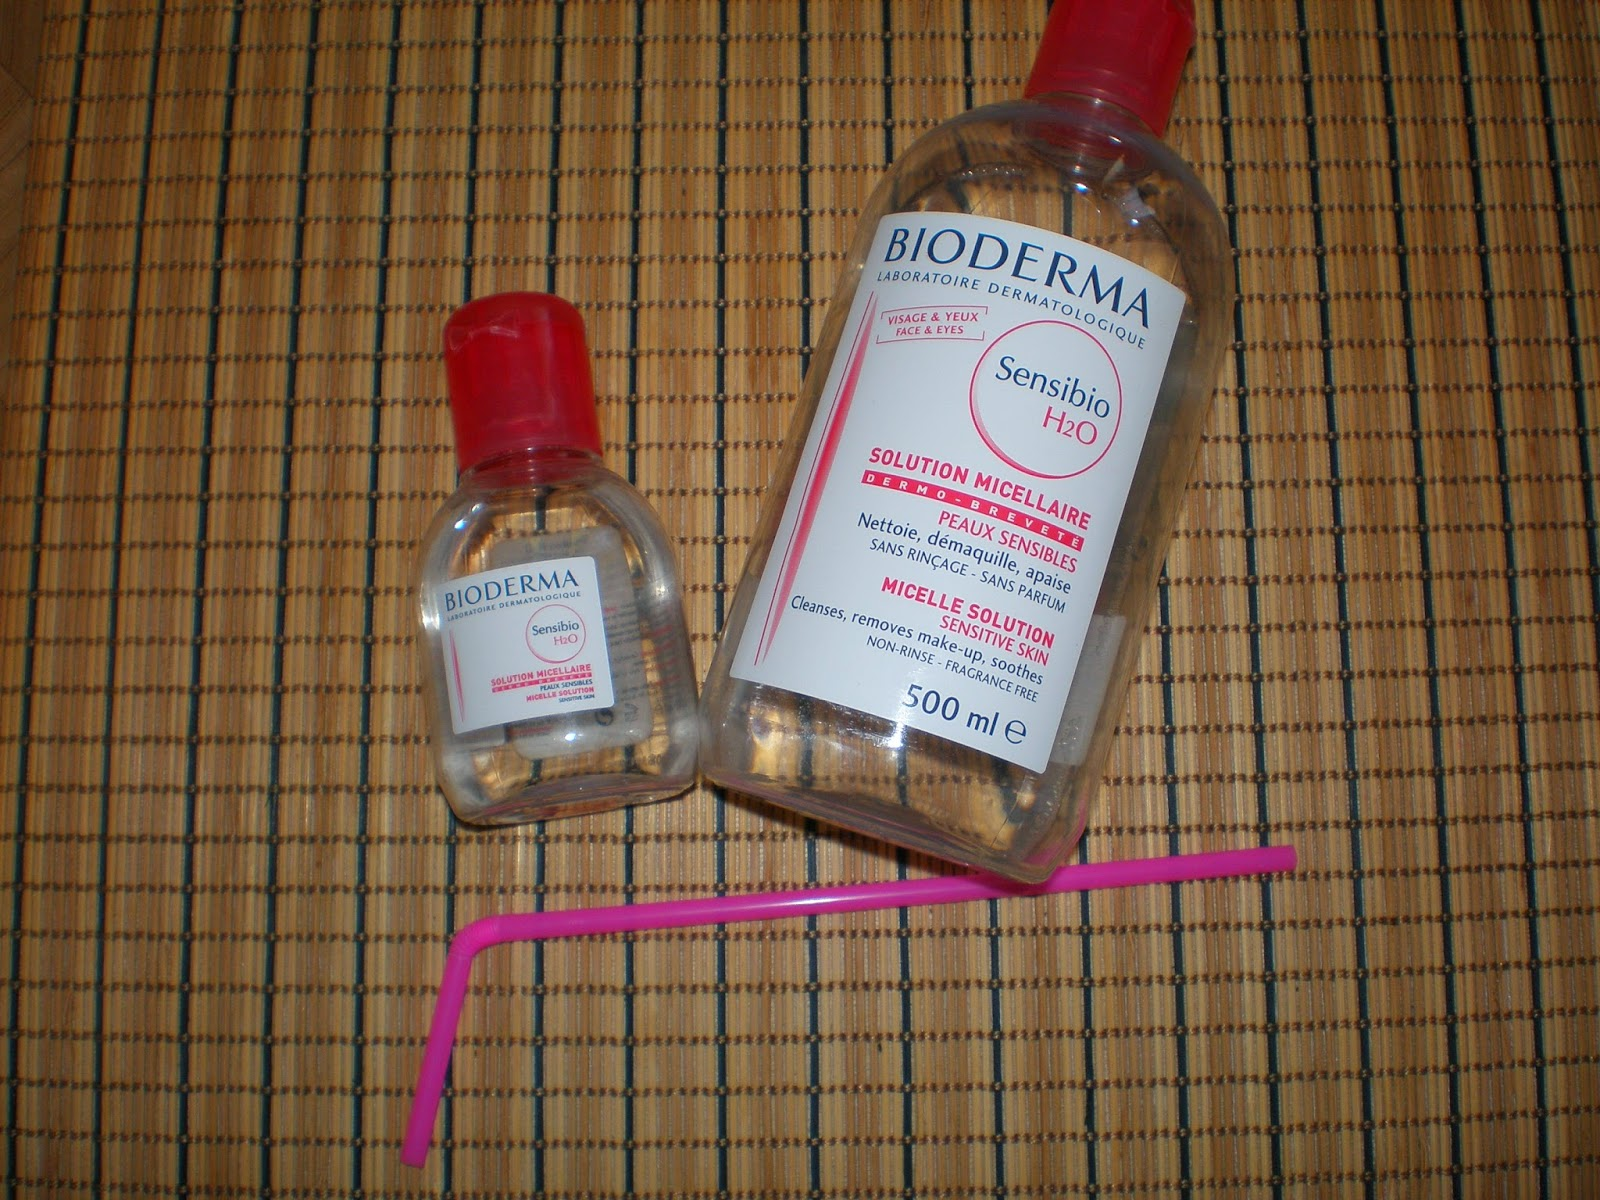 Large and small bottle of Bioderma and a straw